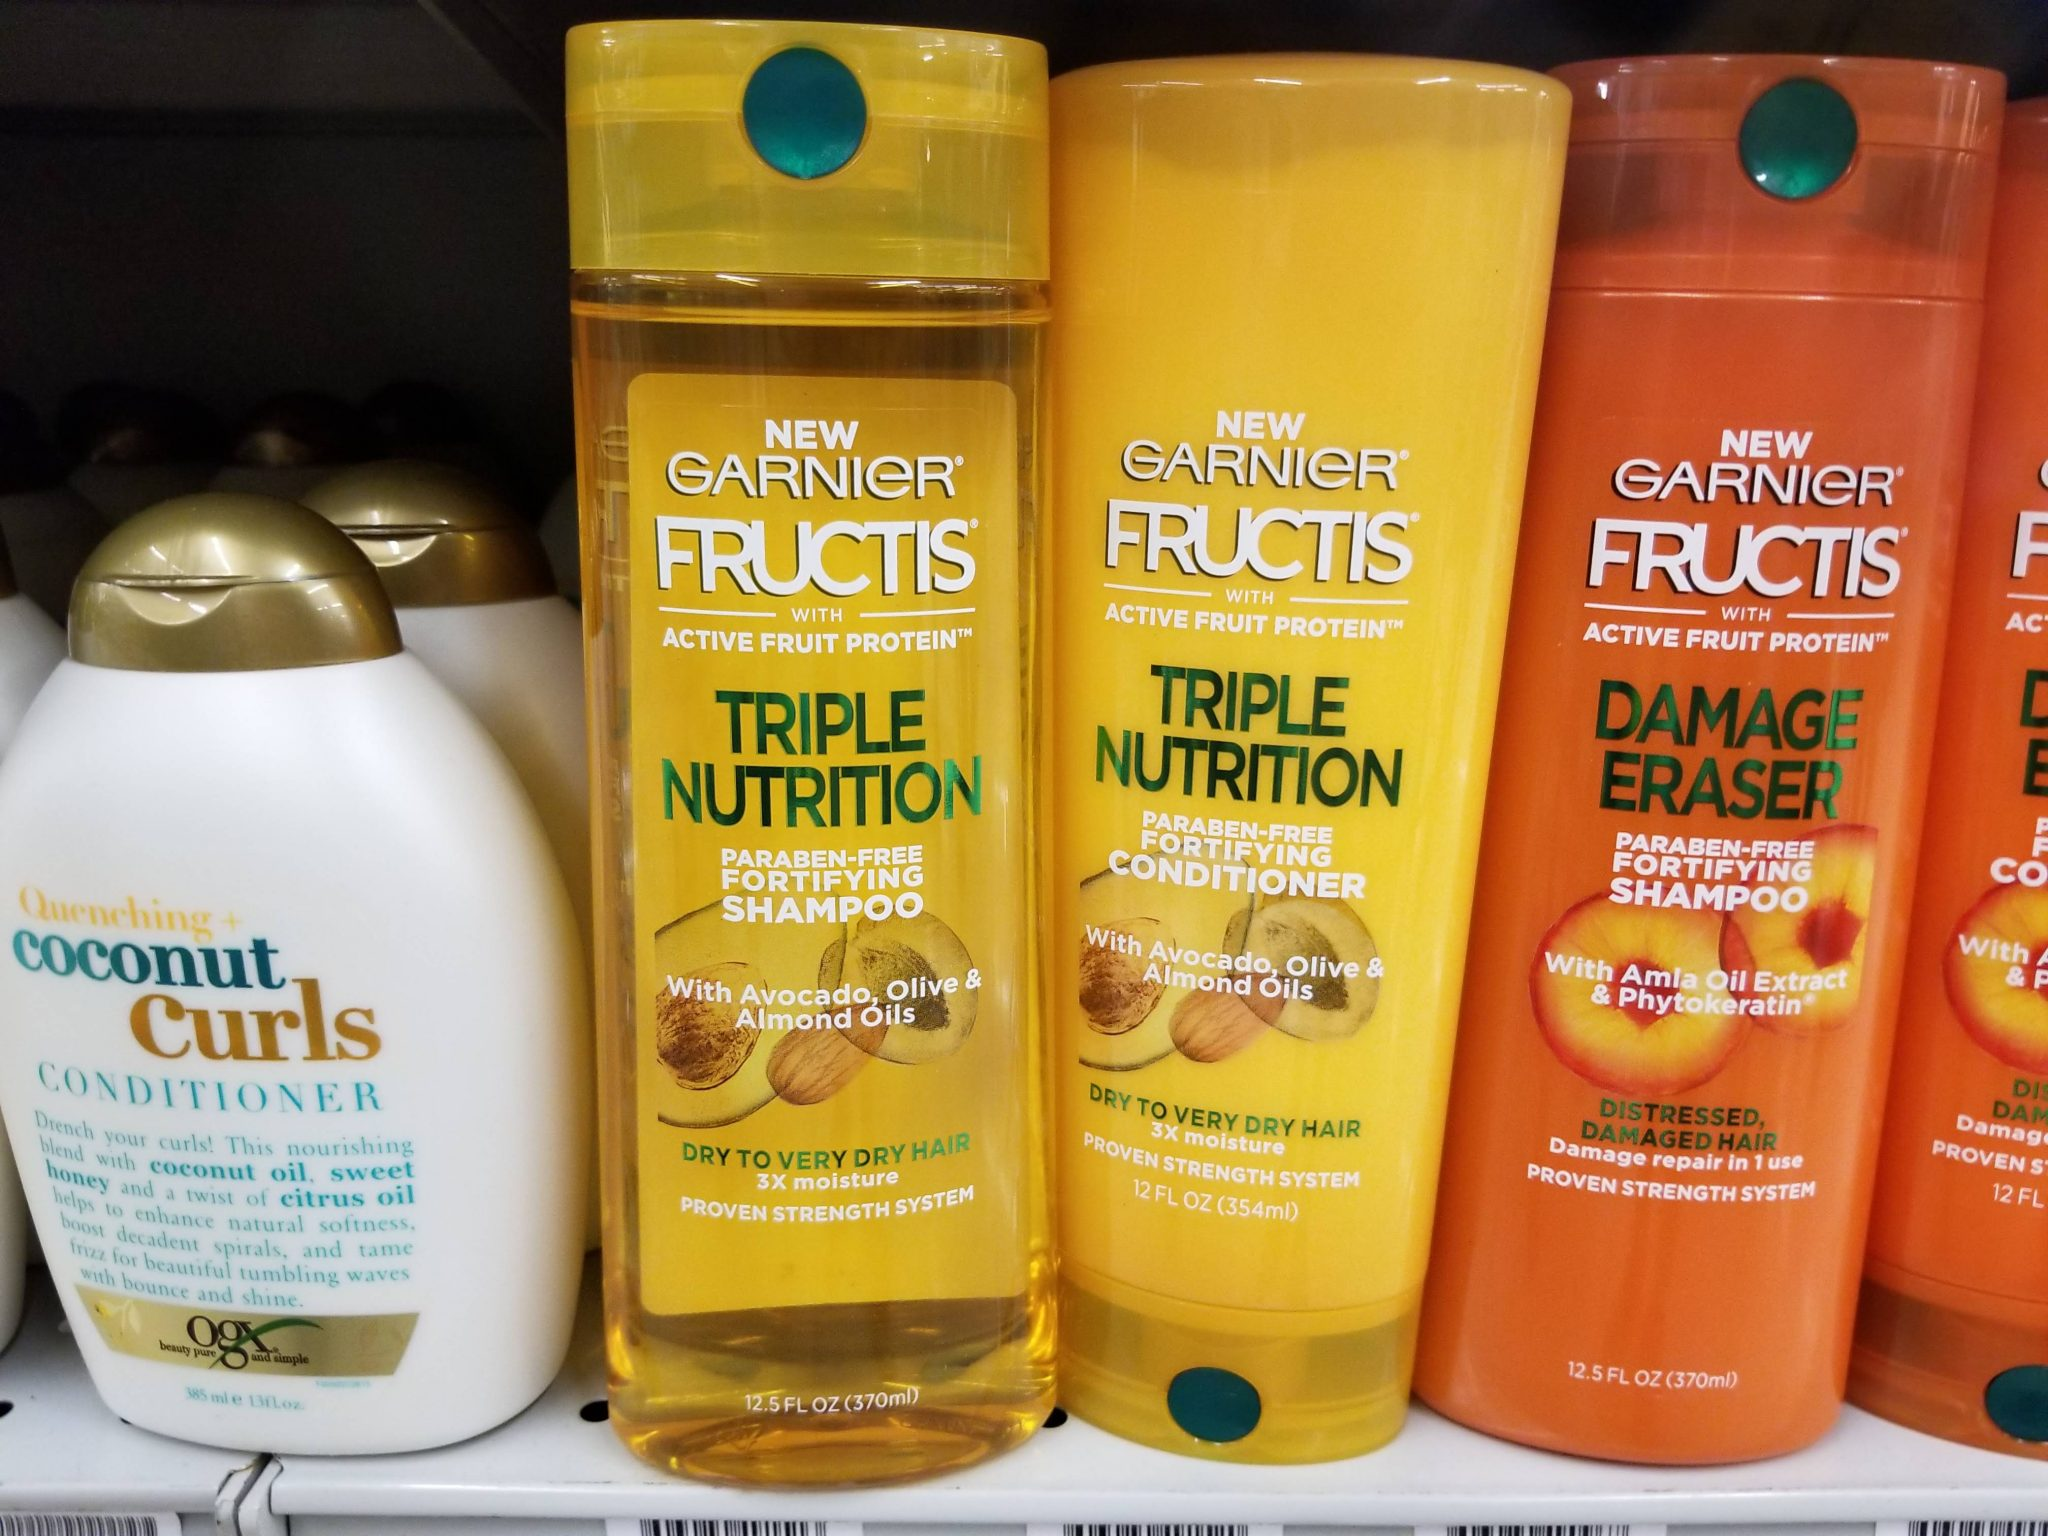 STOCK UP PRICES on Garnier Fructis Hair Care at Walgreens!